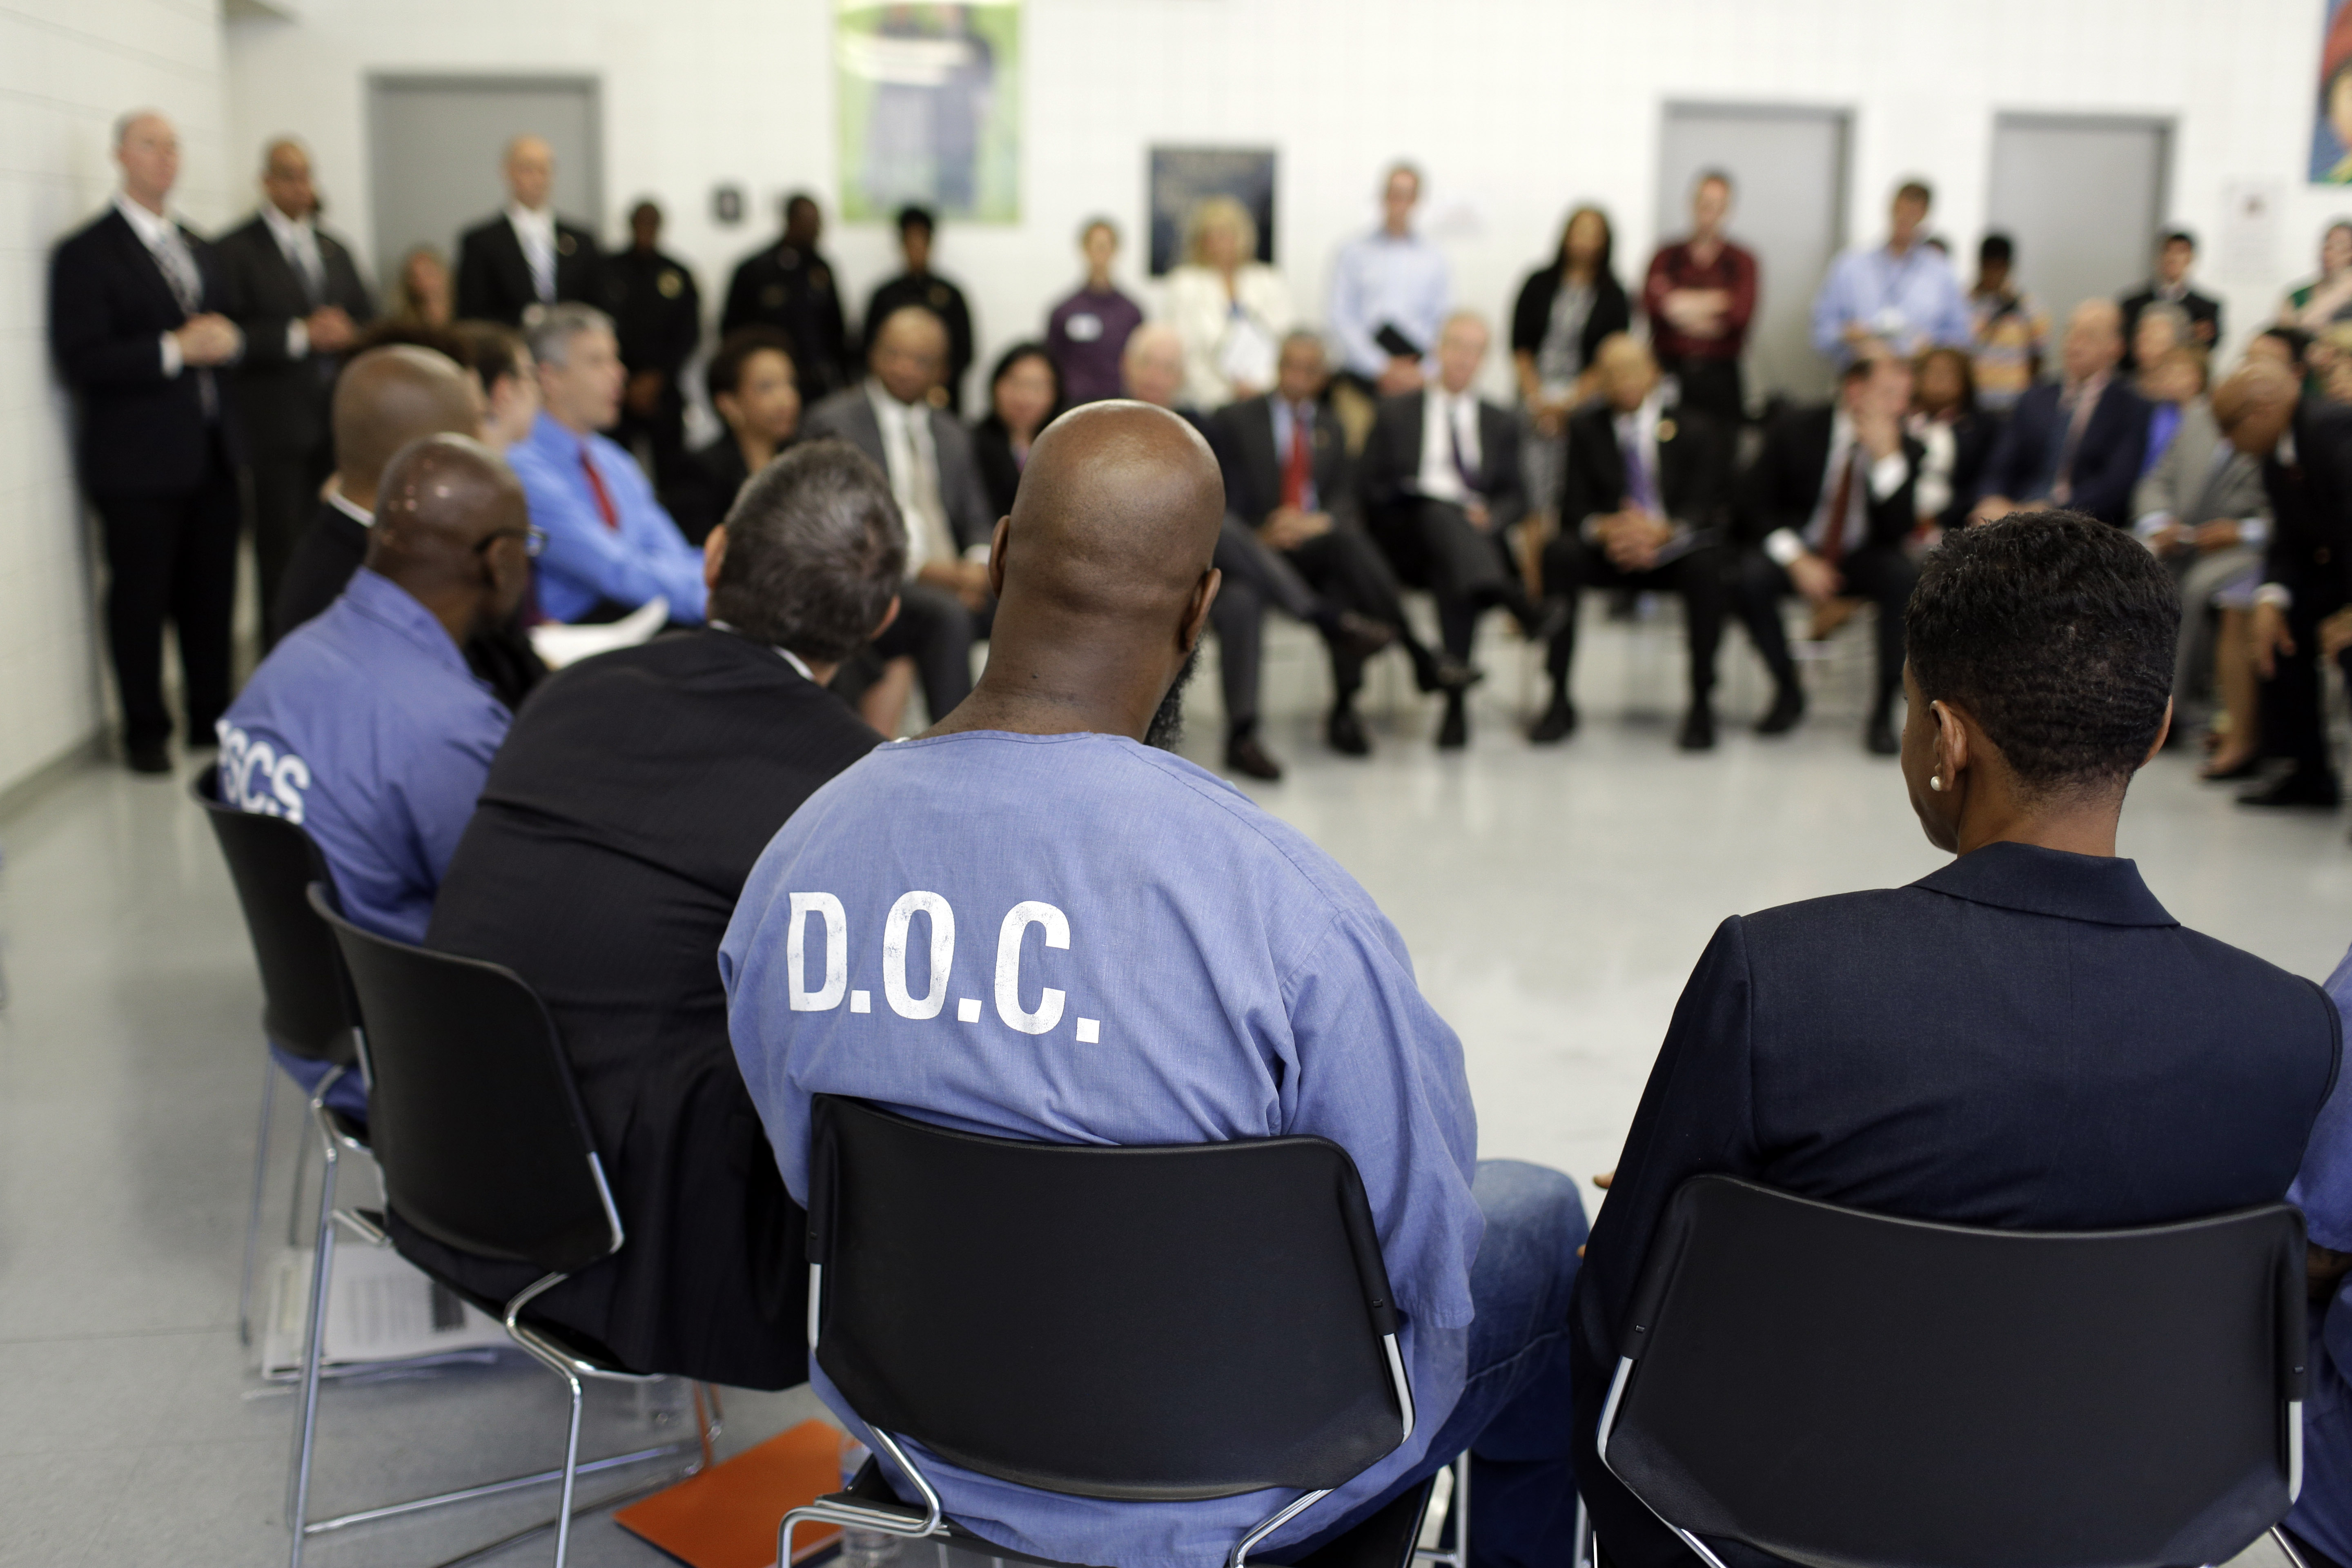 The issue of americas prisons as graduate shools for crime